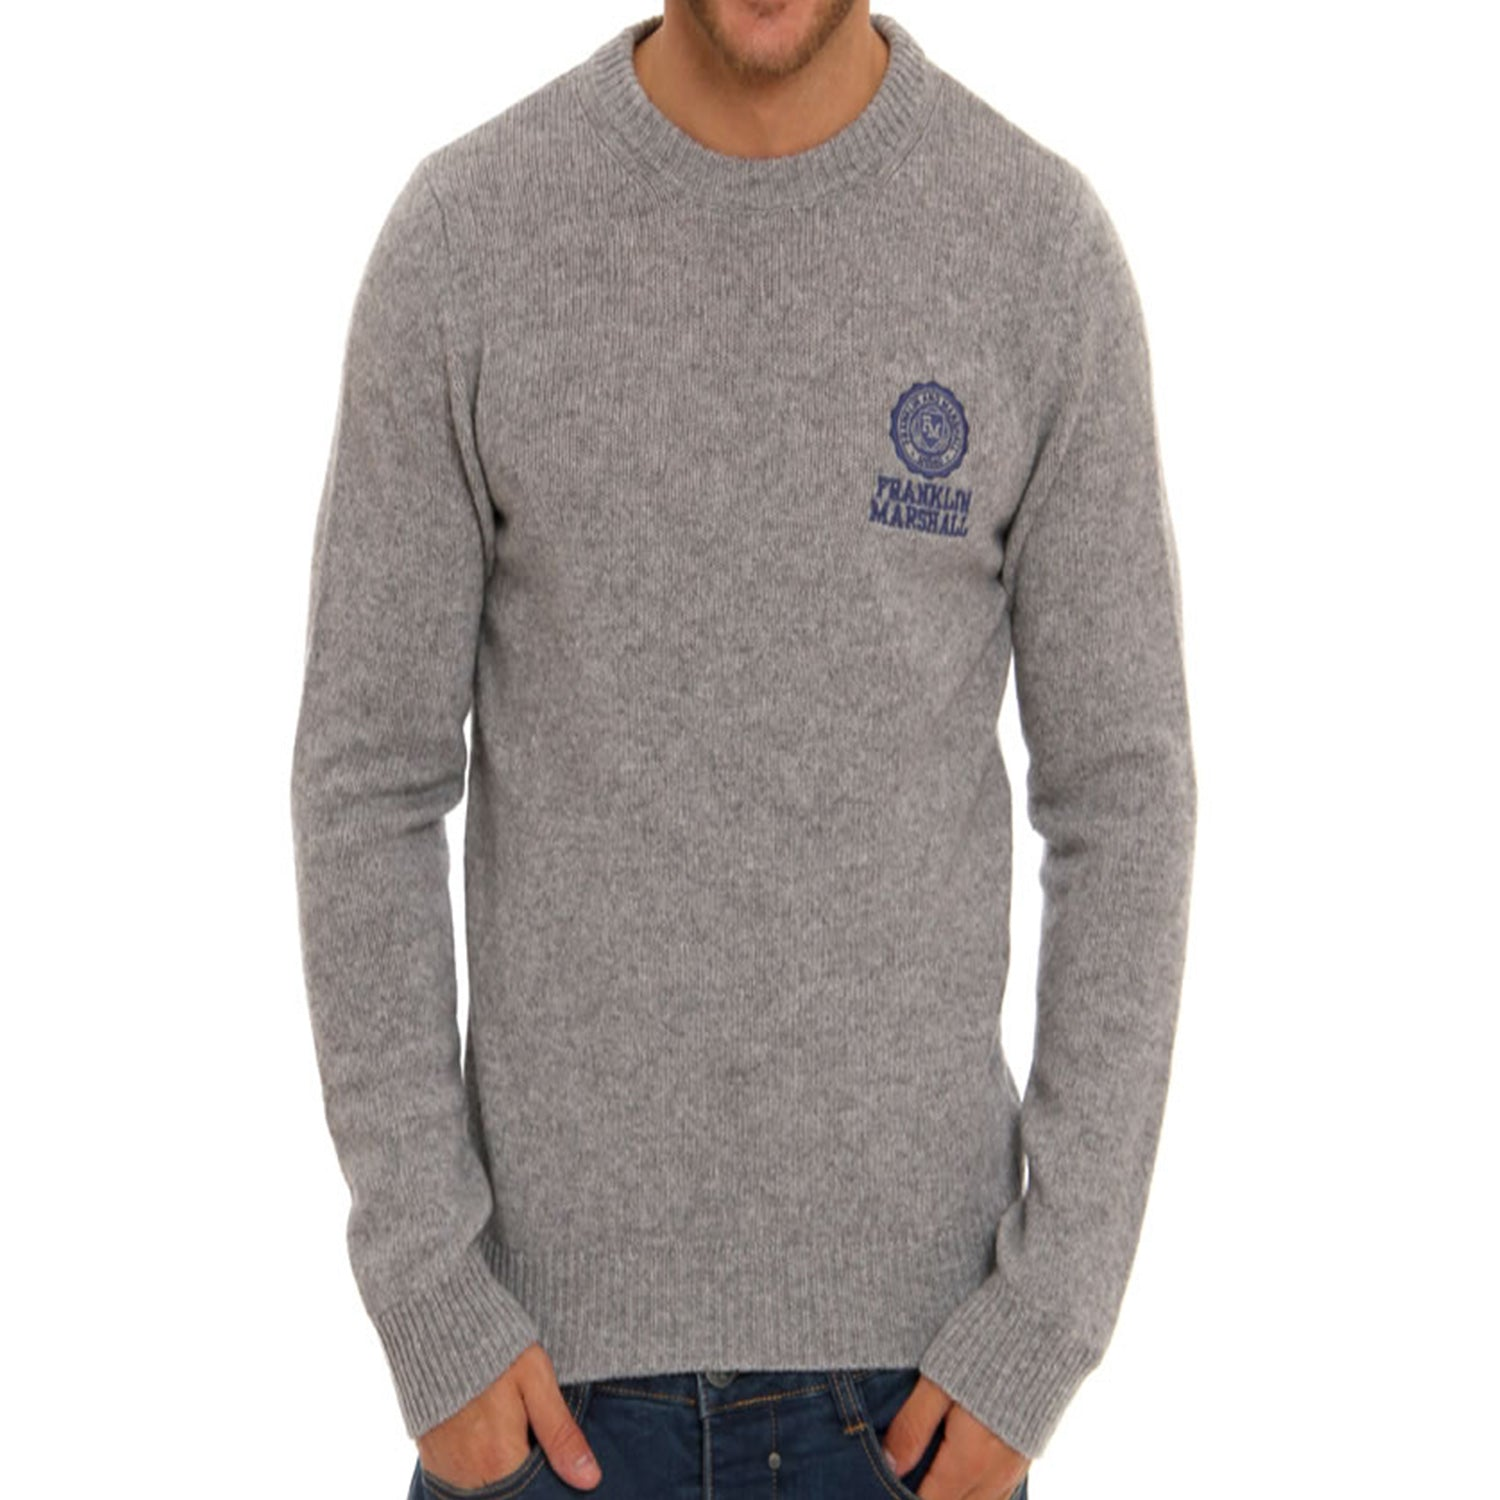 Franklin & Marshall Embroidered Logo Wool Knit